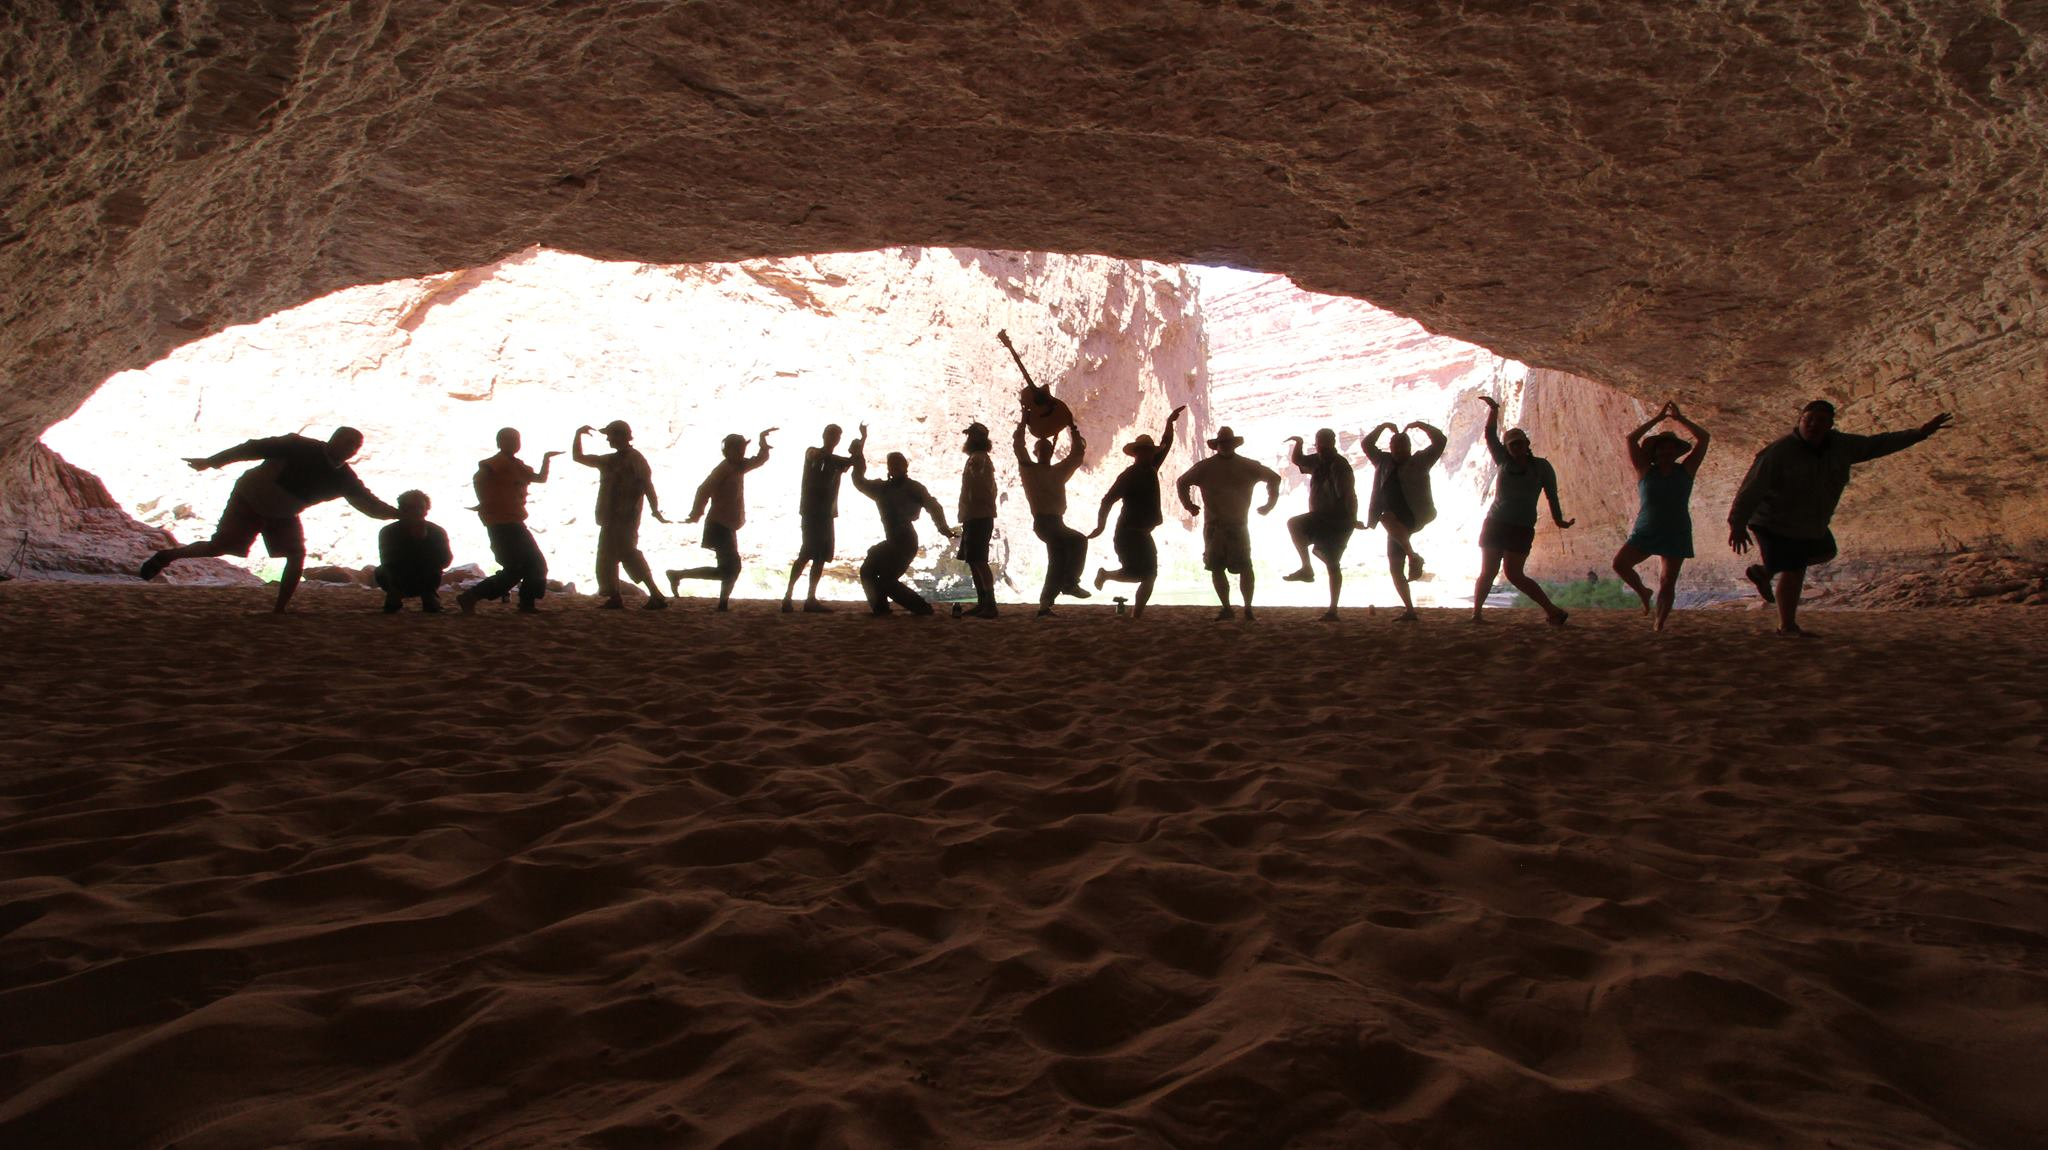 Rafters pose for silhouette shot in Redwall Cavern, Grand Canyon National Park. Photo Courtesy of Michael Turner